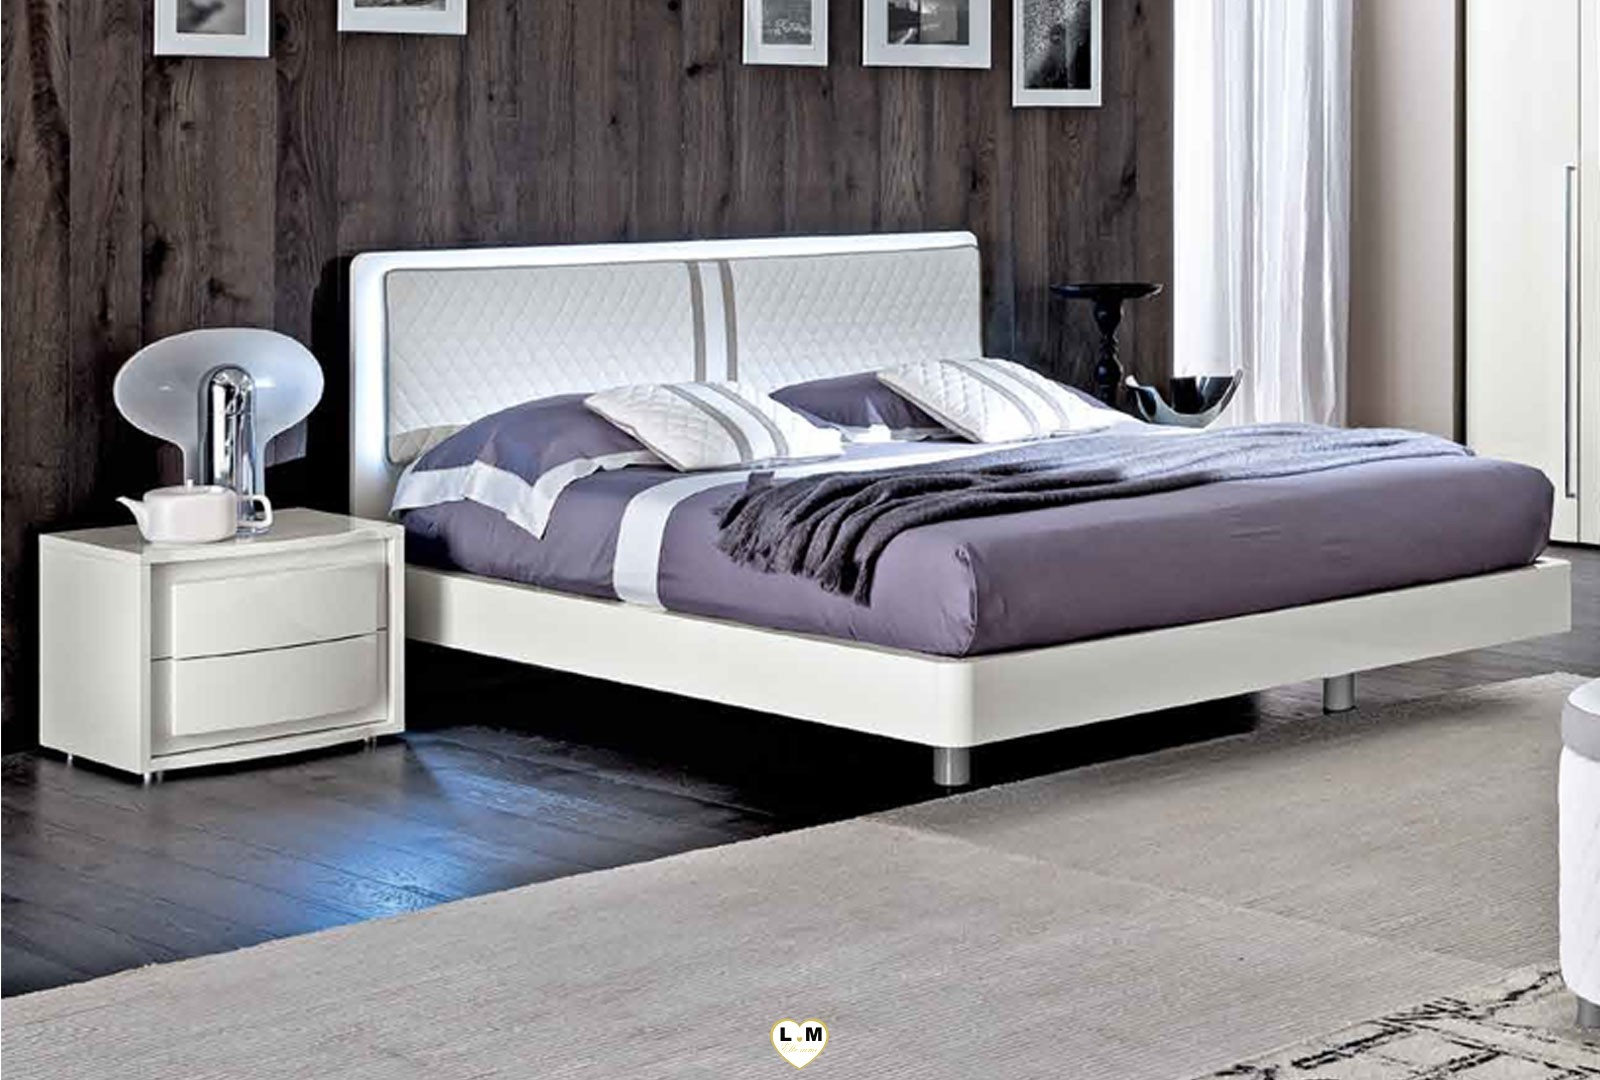 maximus laque blanc brillant chambre a coucher contemporain le lit matelasse 180x200. Black Bedroom Furniture Sets. Home Design Ideas